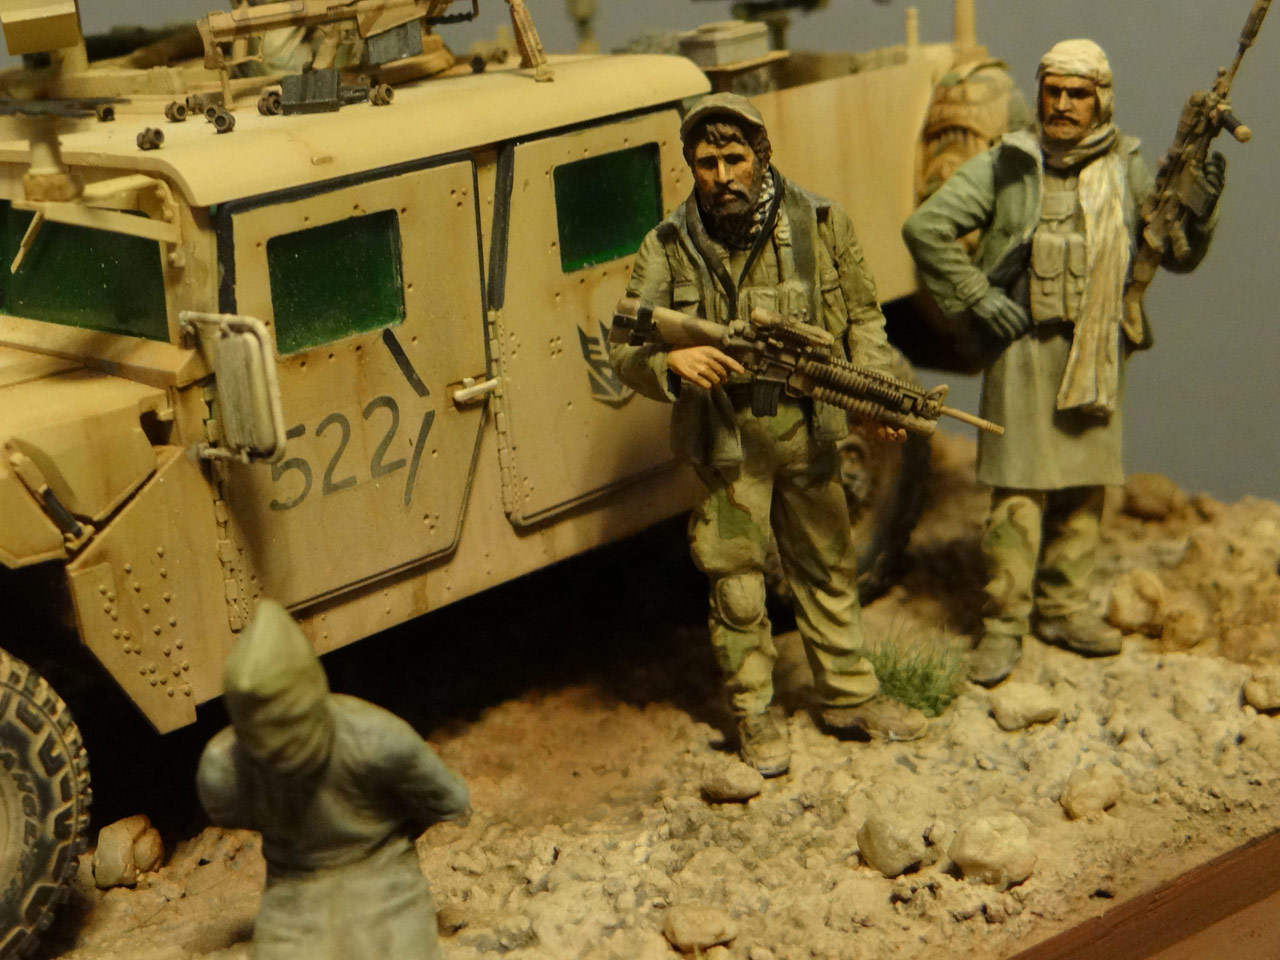 Dioramas and Vignettes: Behind the enemy's lines, photo #3